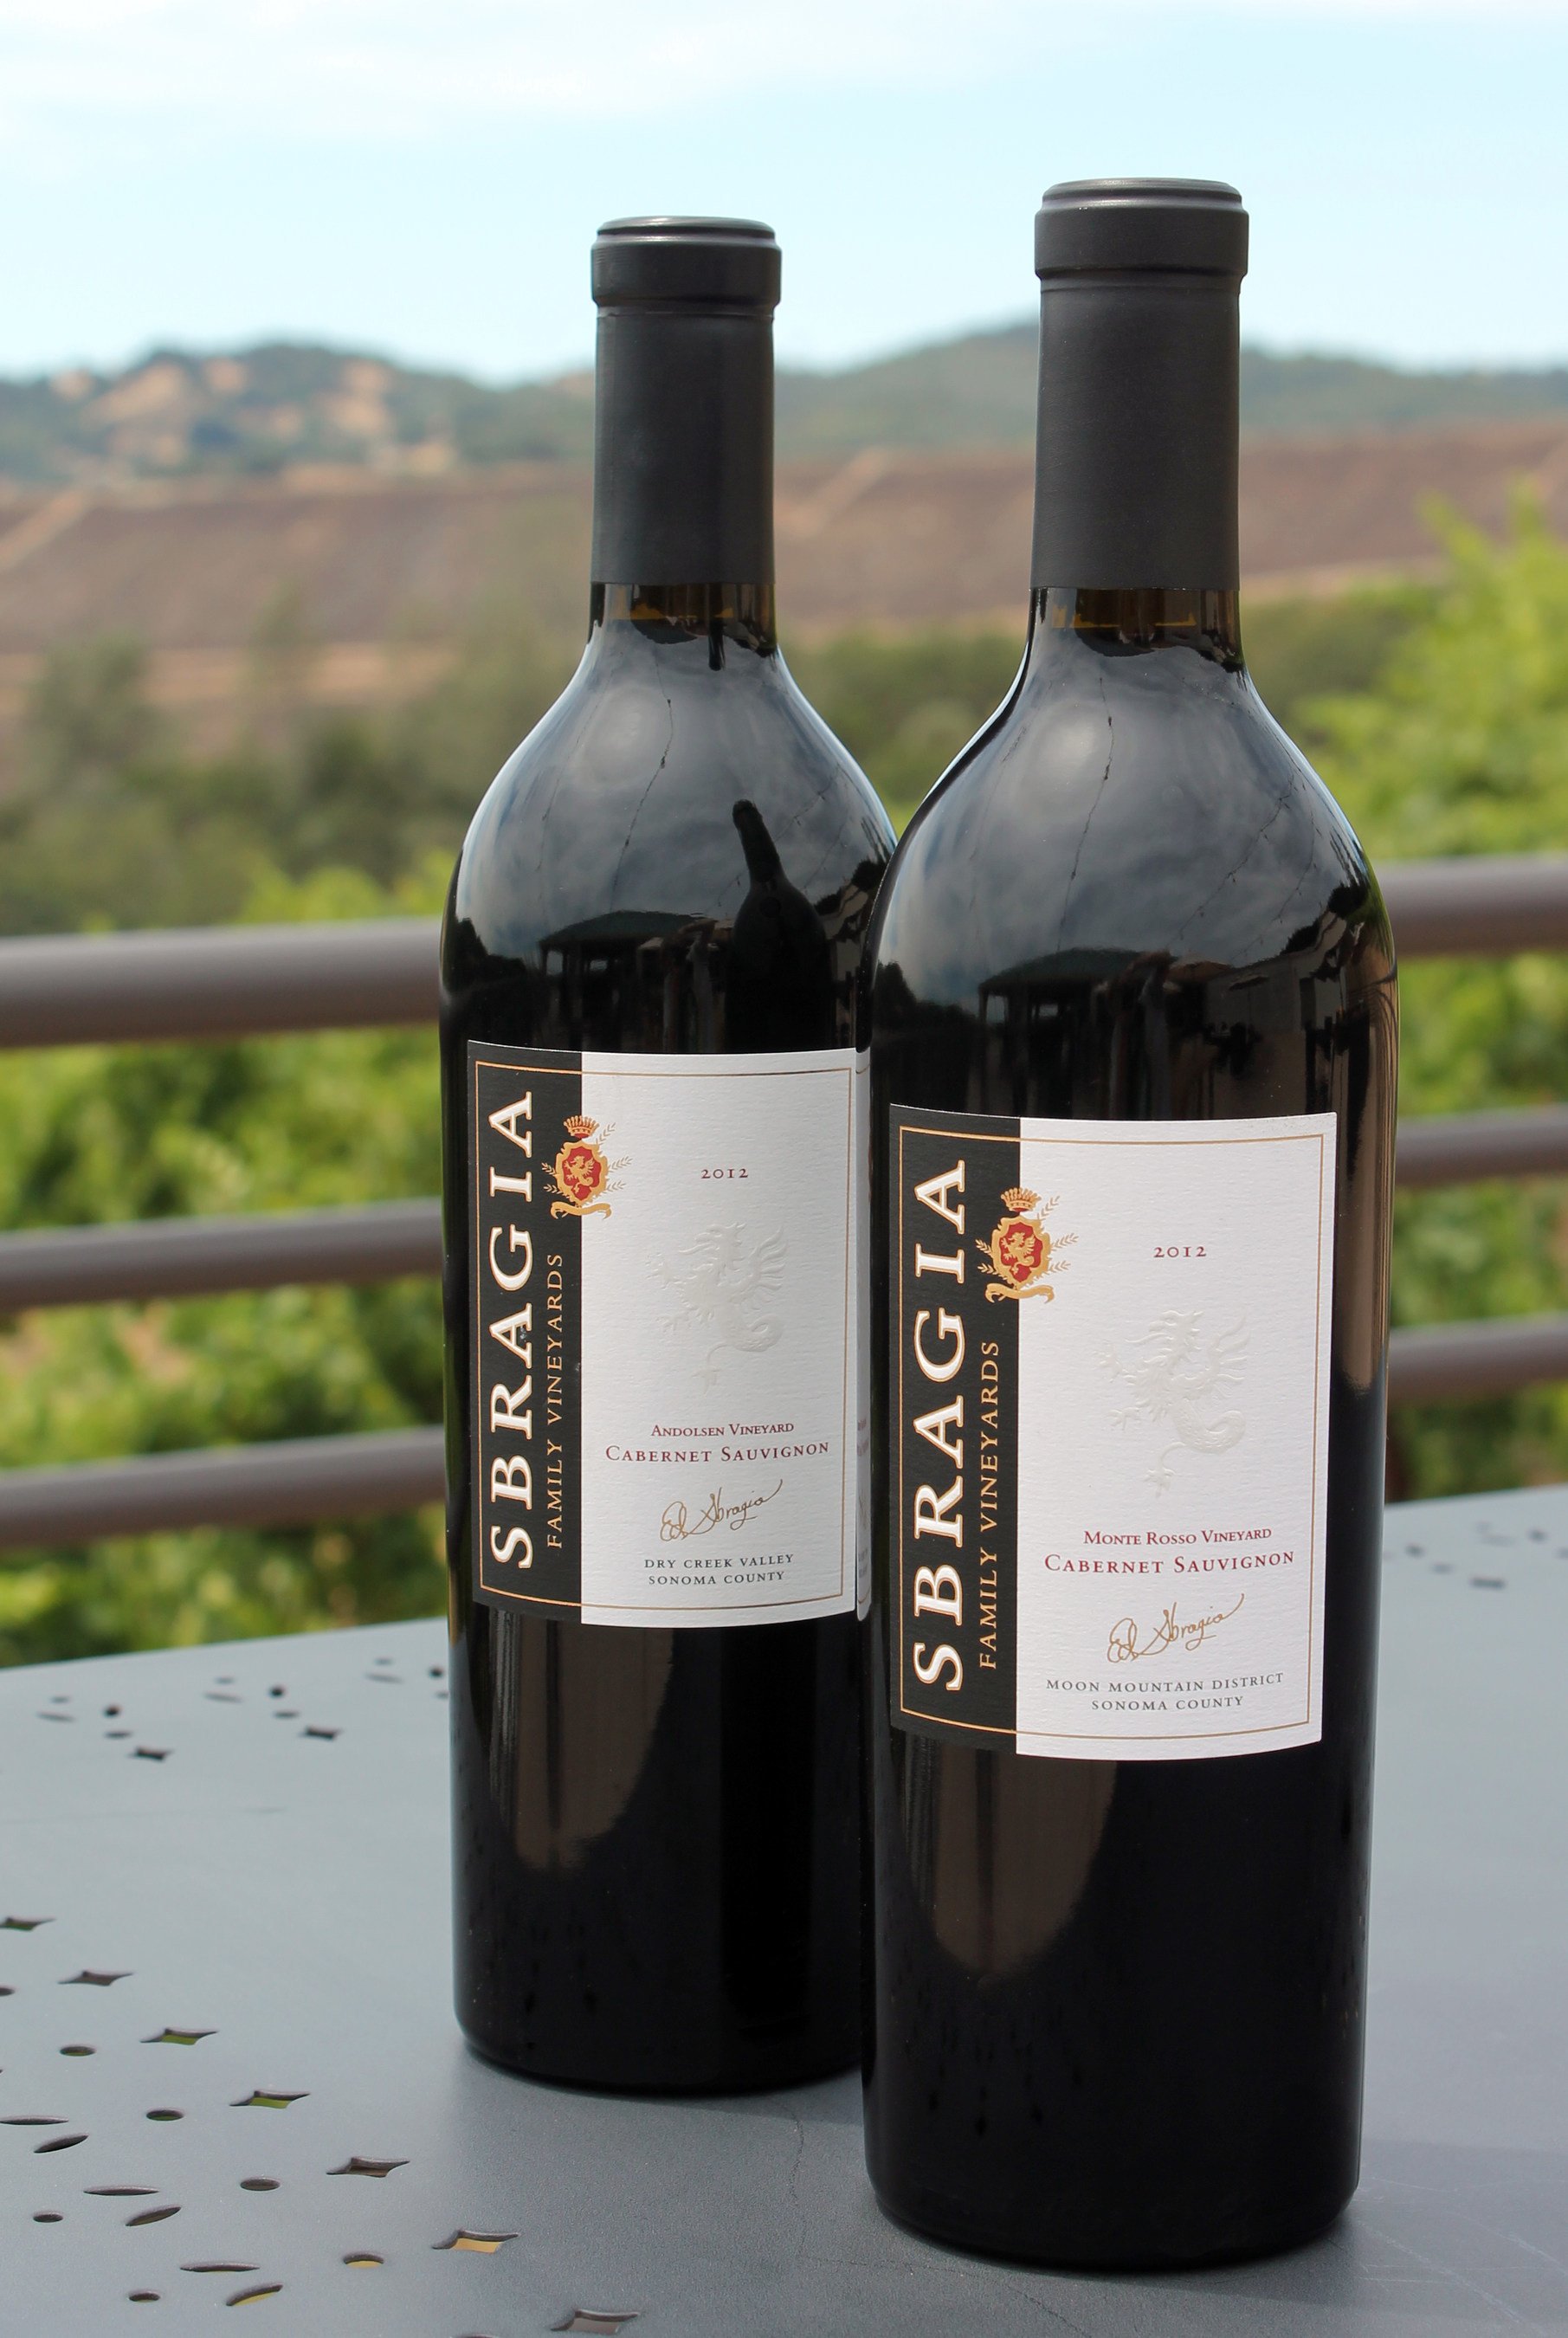 (L-R) 2012 Sbragia Family Vineyards Andolsen Cabernet and 2012 Monte Rosso Cabernet.